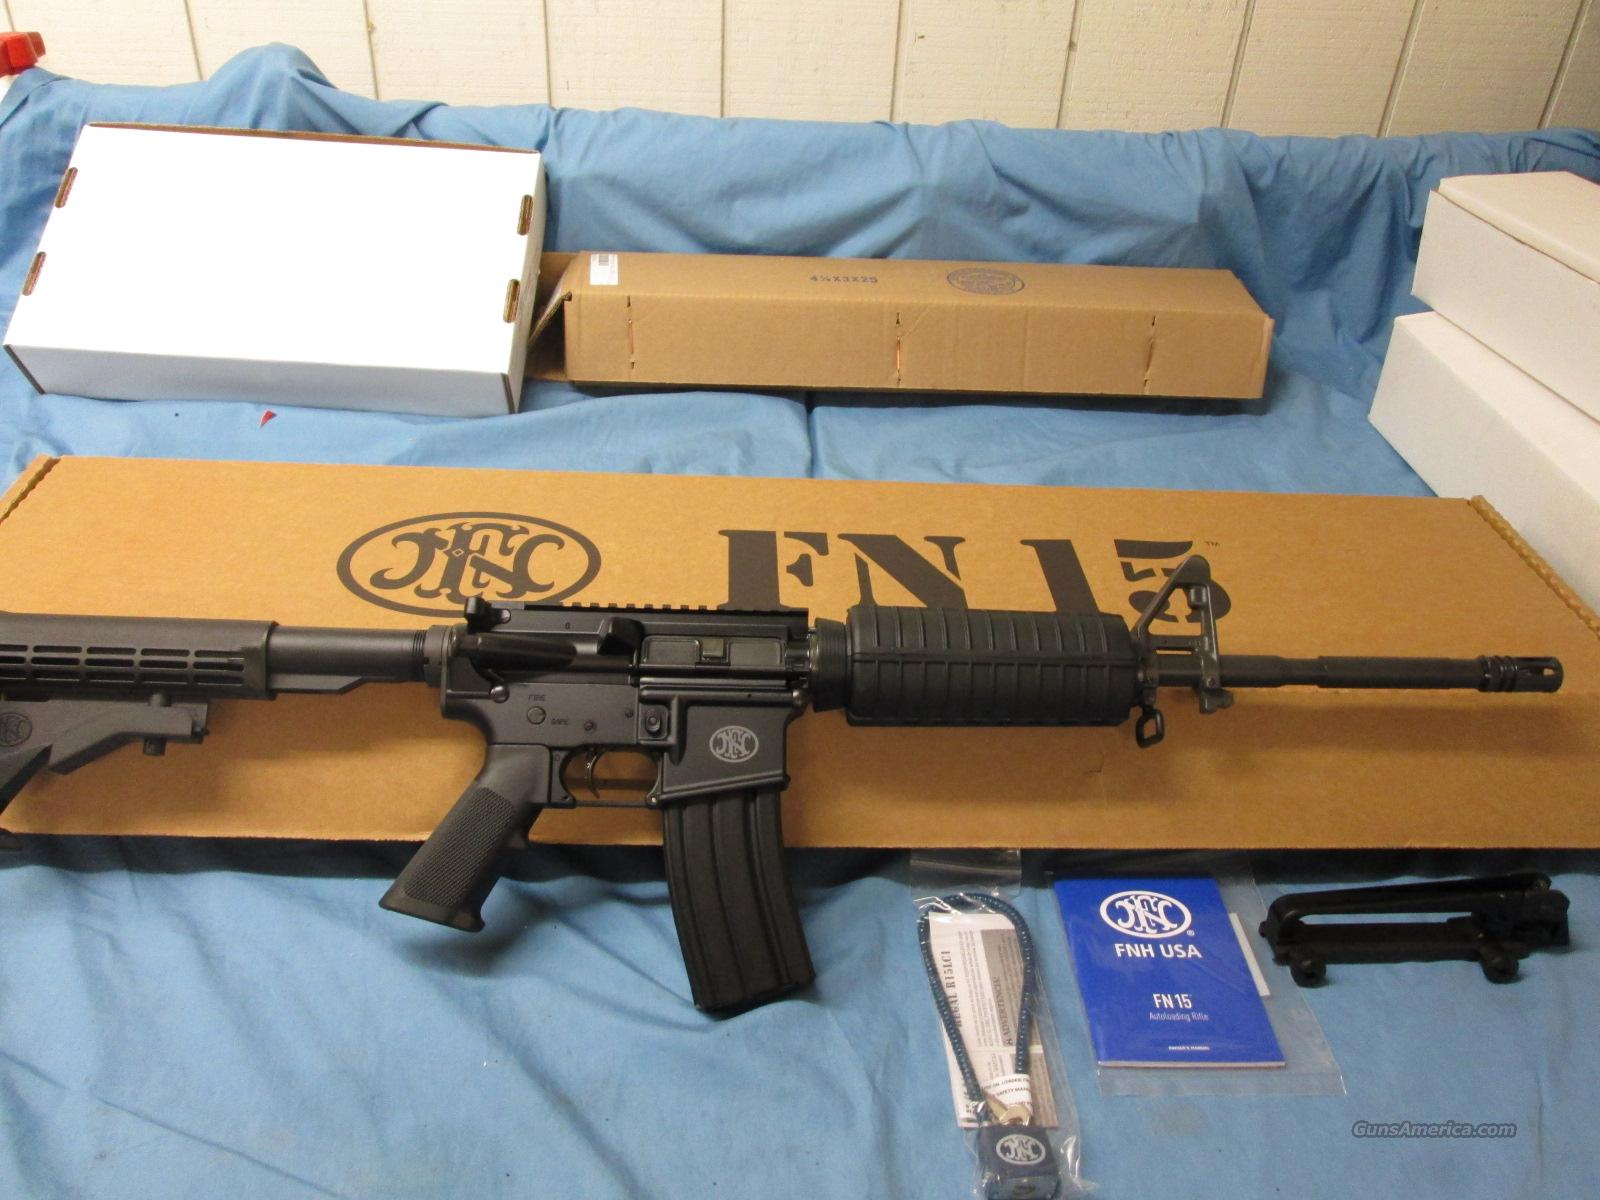 CLEARANCE SALE! FNH FN15   Guns > Rifles > FNH - Fabrique Nationale (FN) Rifles > Semi-auto > Other